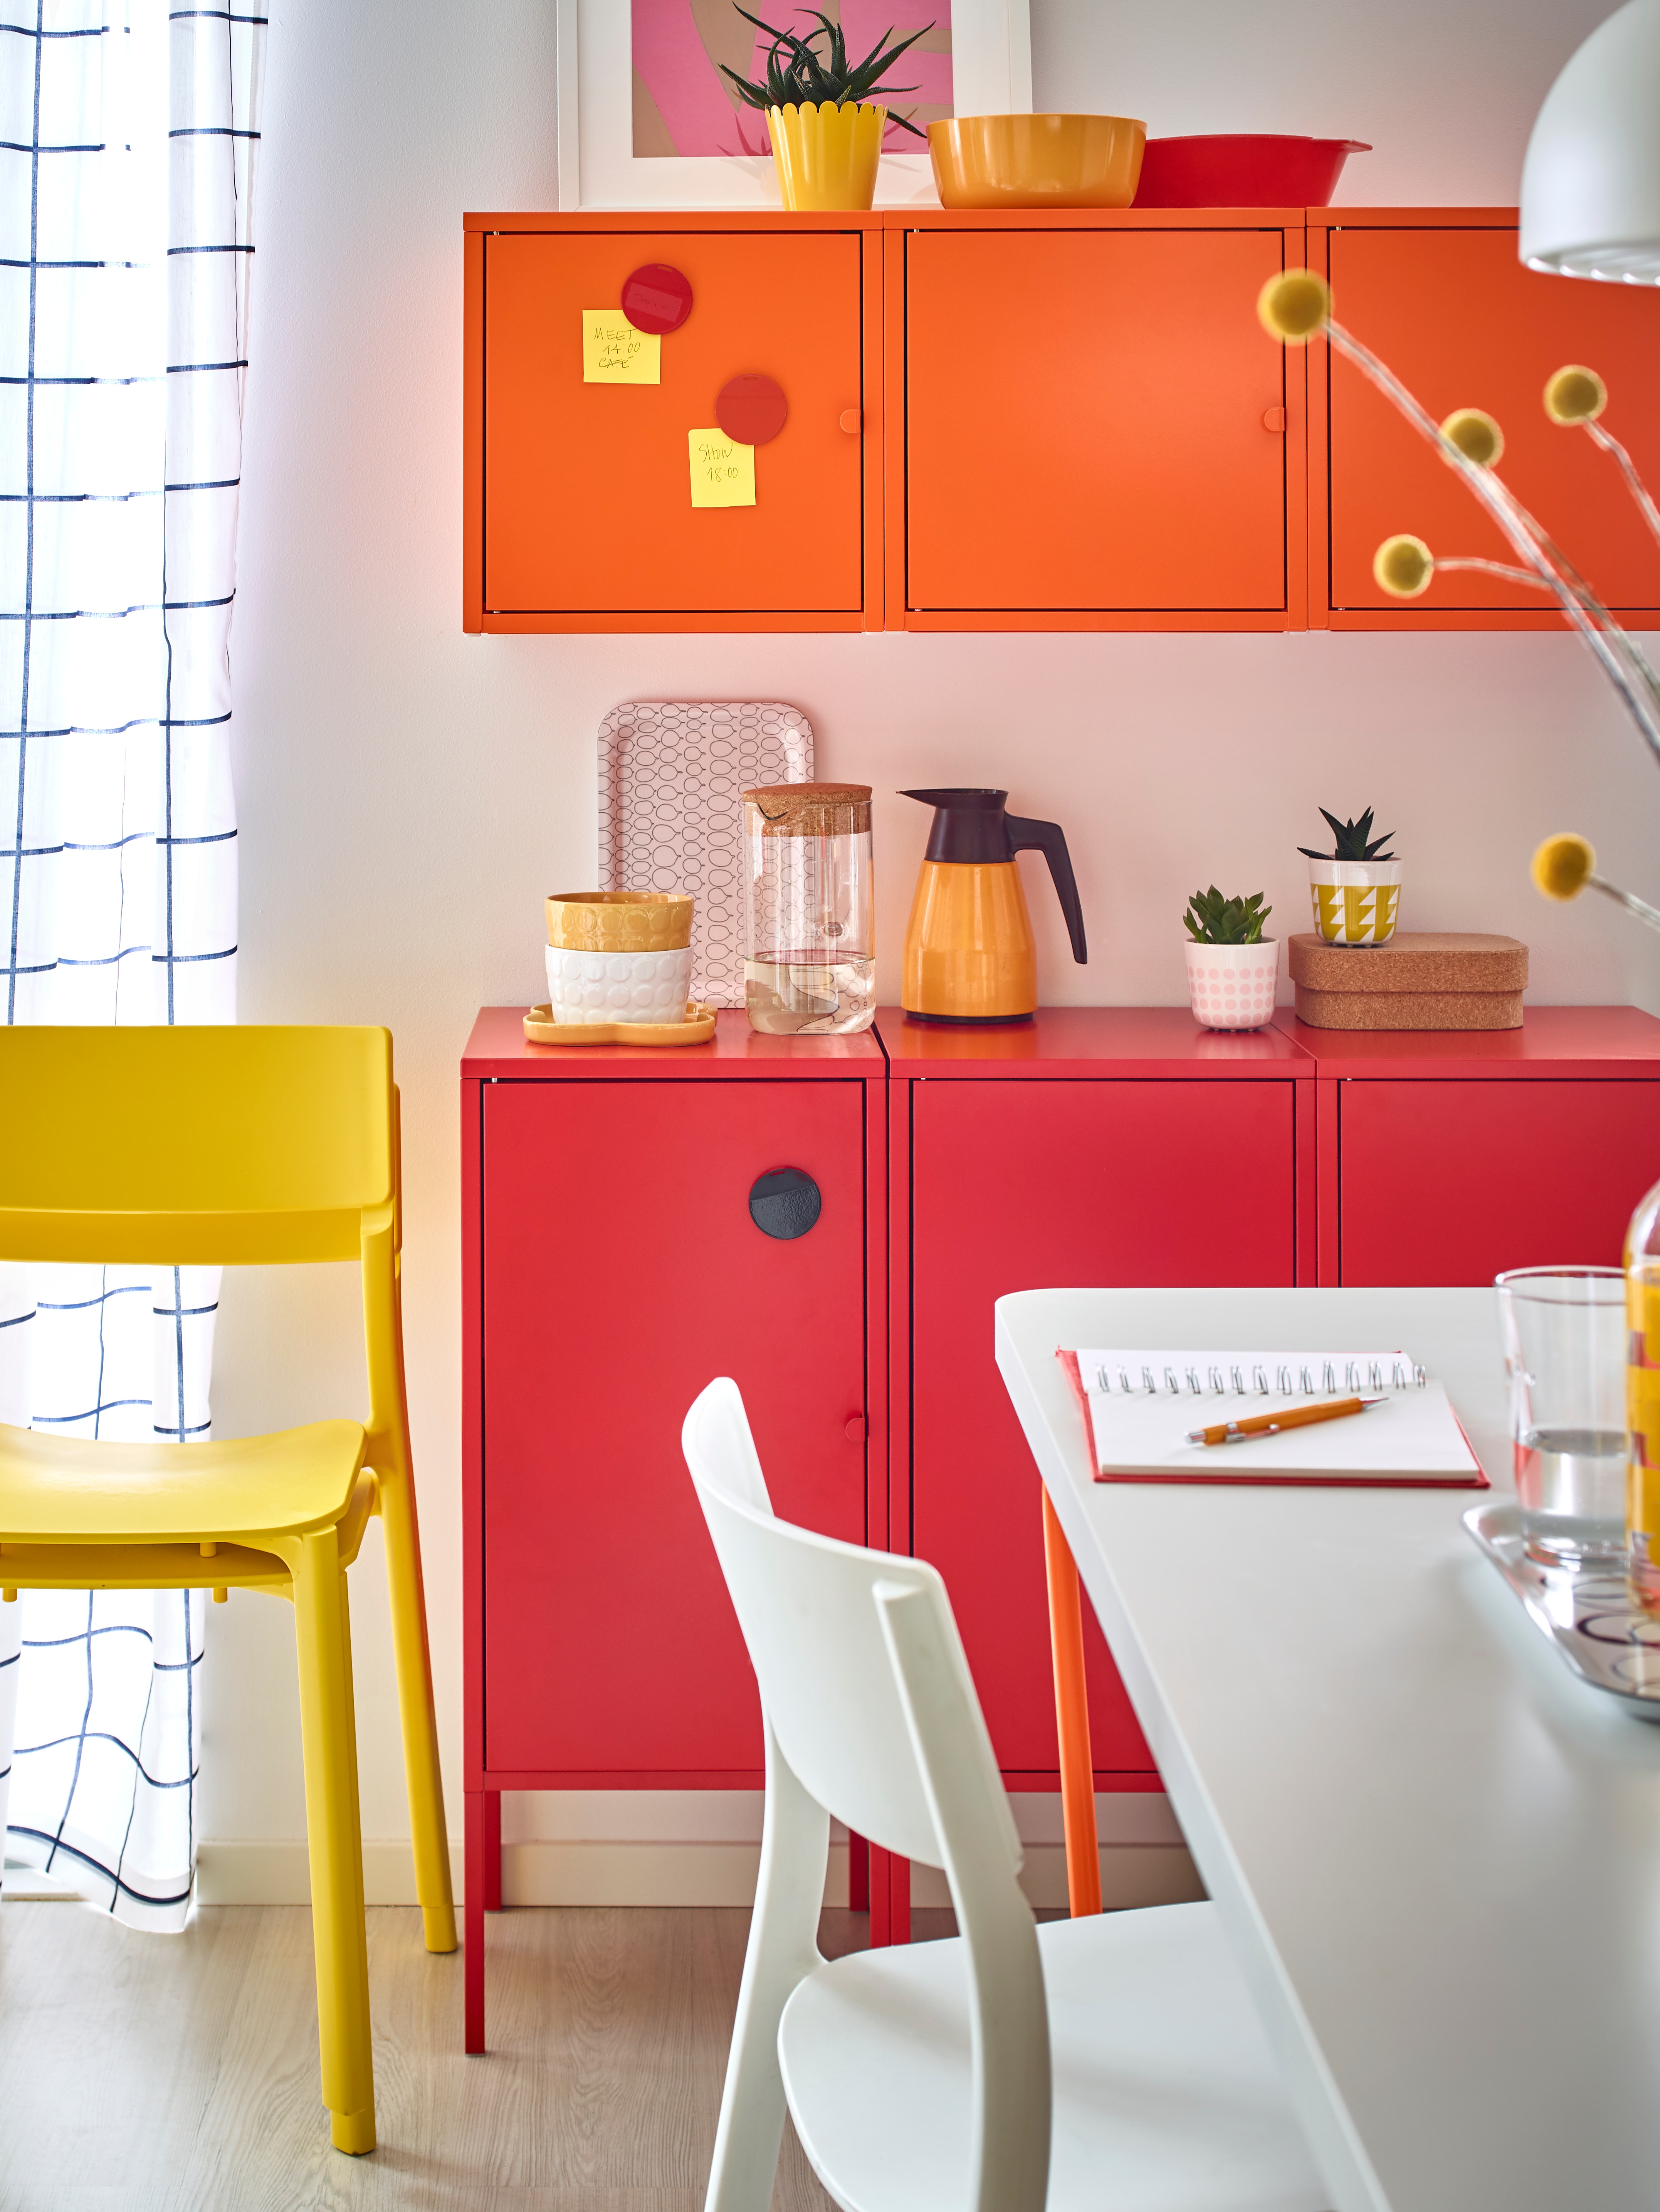 A row of metal/red LIXHULT cabinets has a carafe and tea pot on it, below wall-mounted orange cabinets in a dining area.